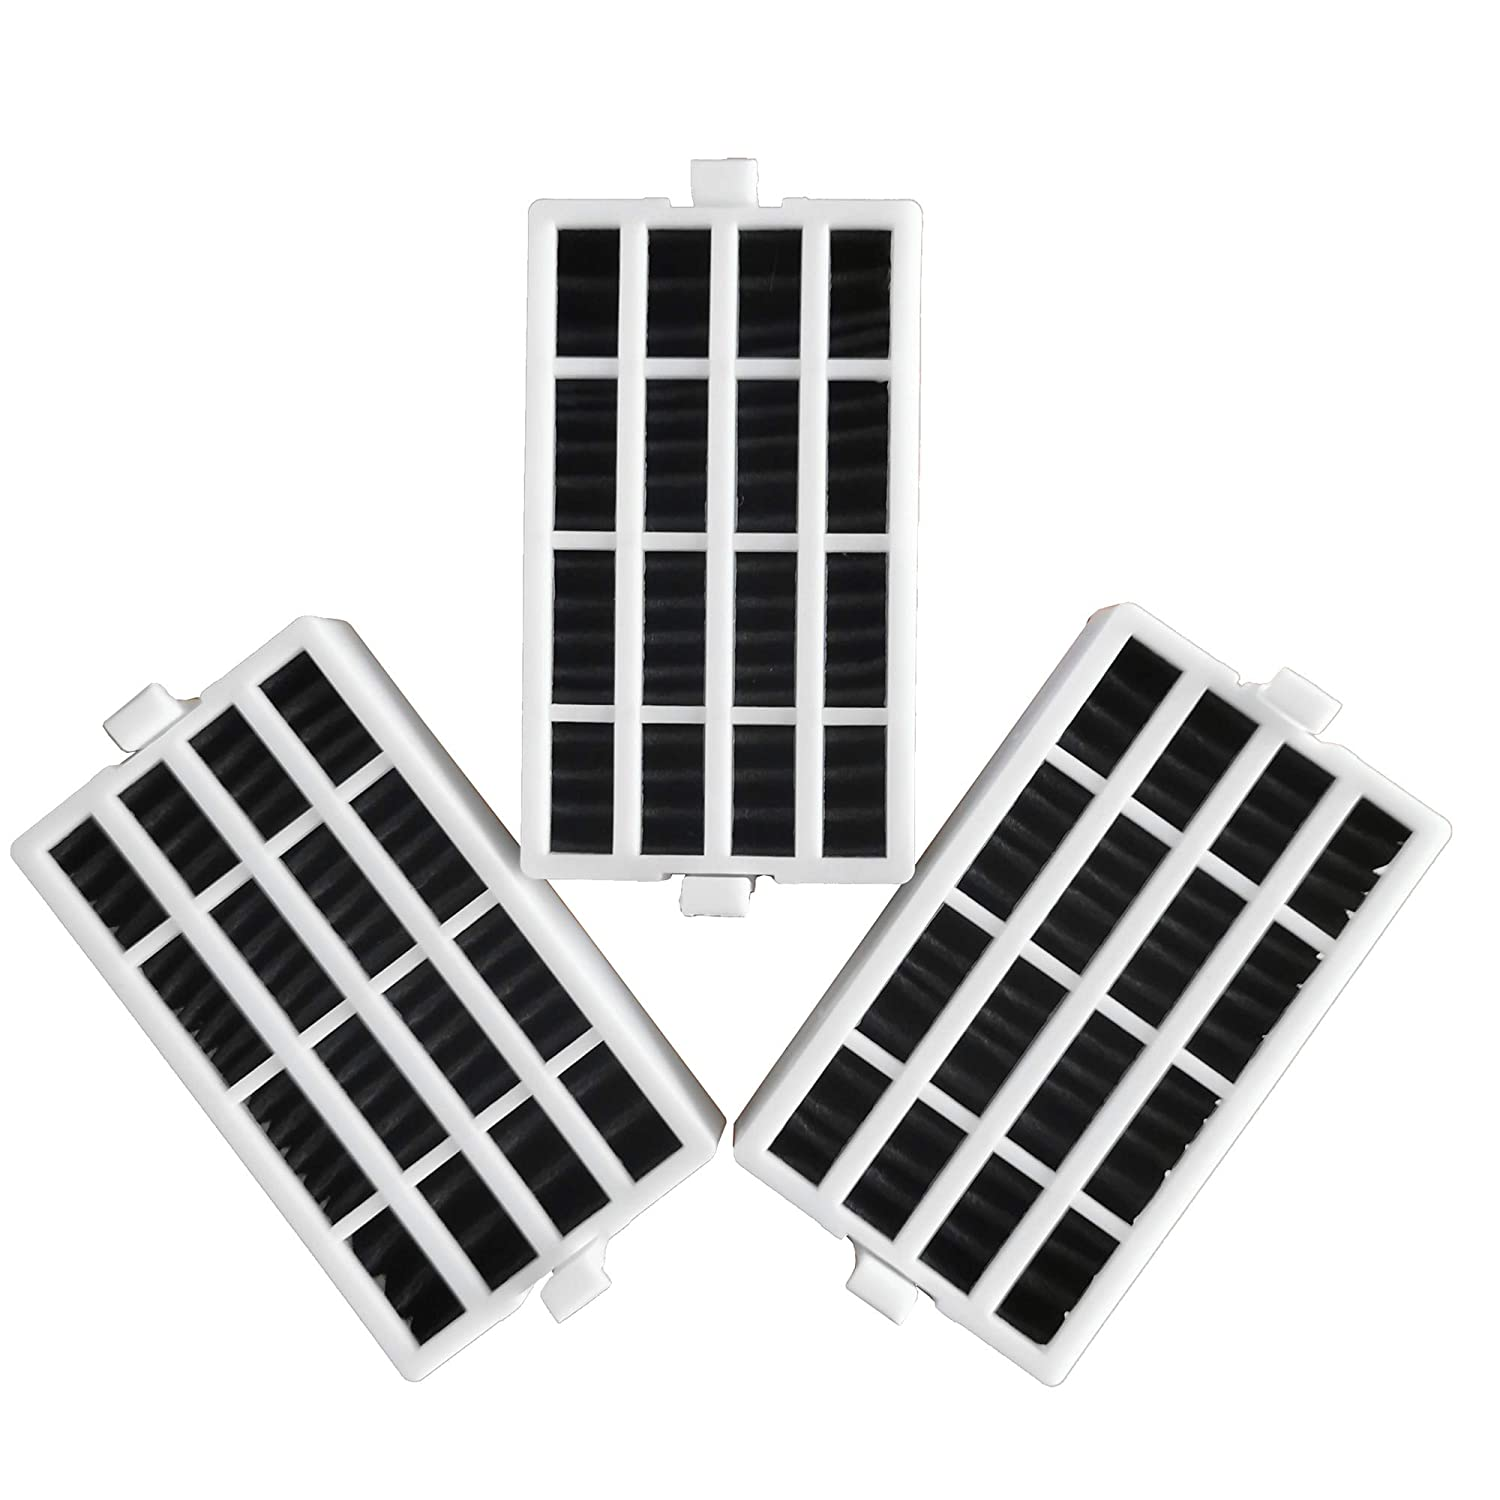 Replacement Refrigerator Air Filter for Whirlpool W10311524 AIR1, 3 Pack